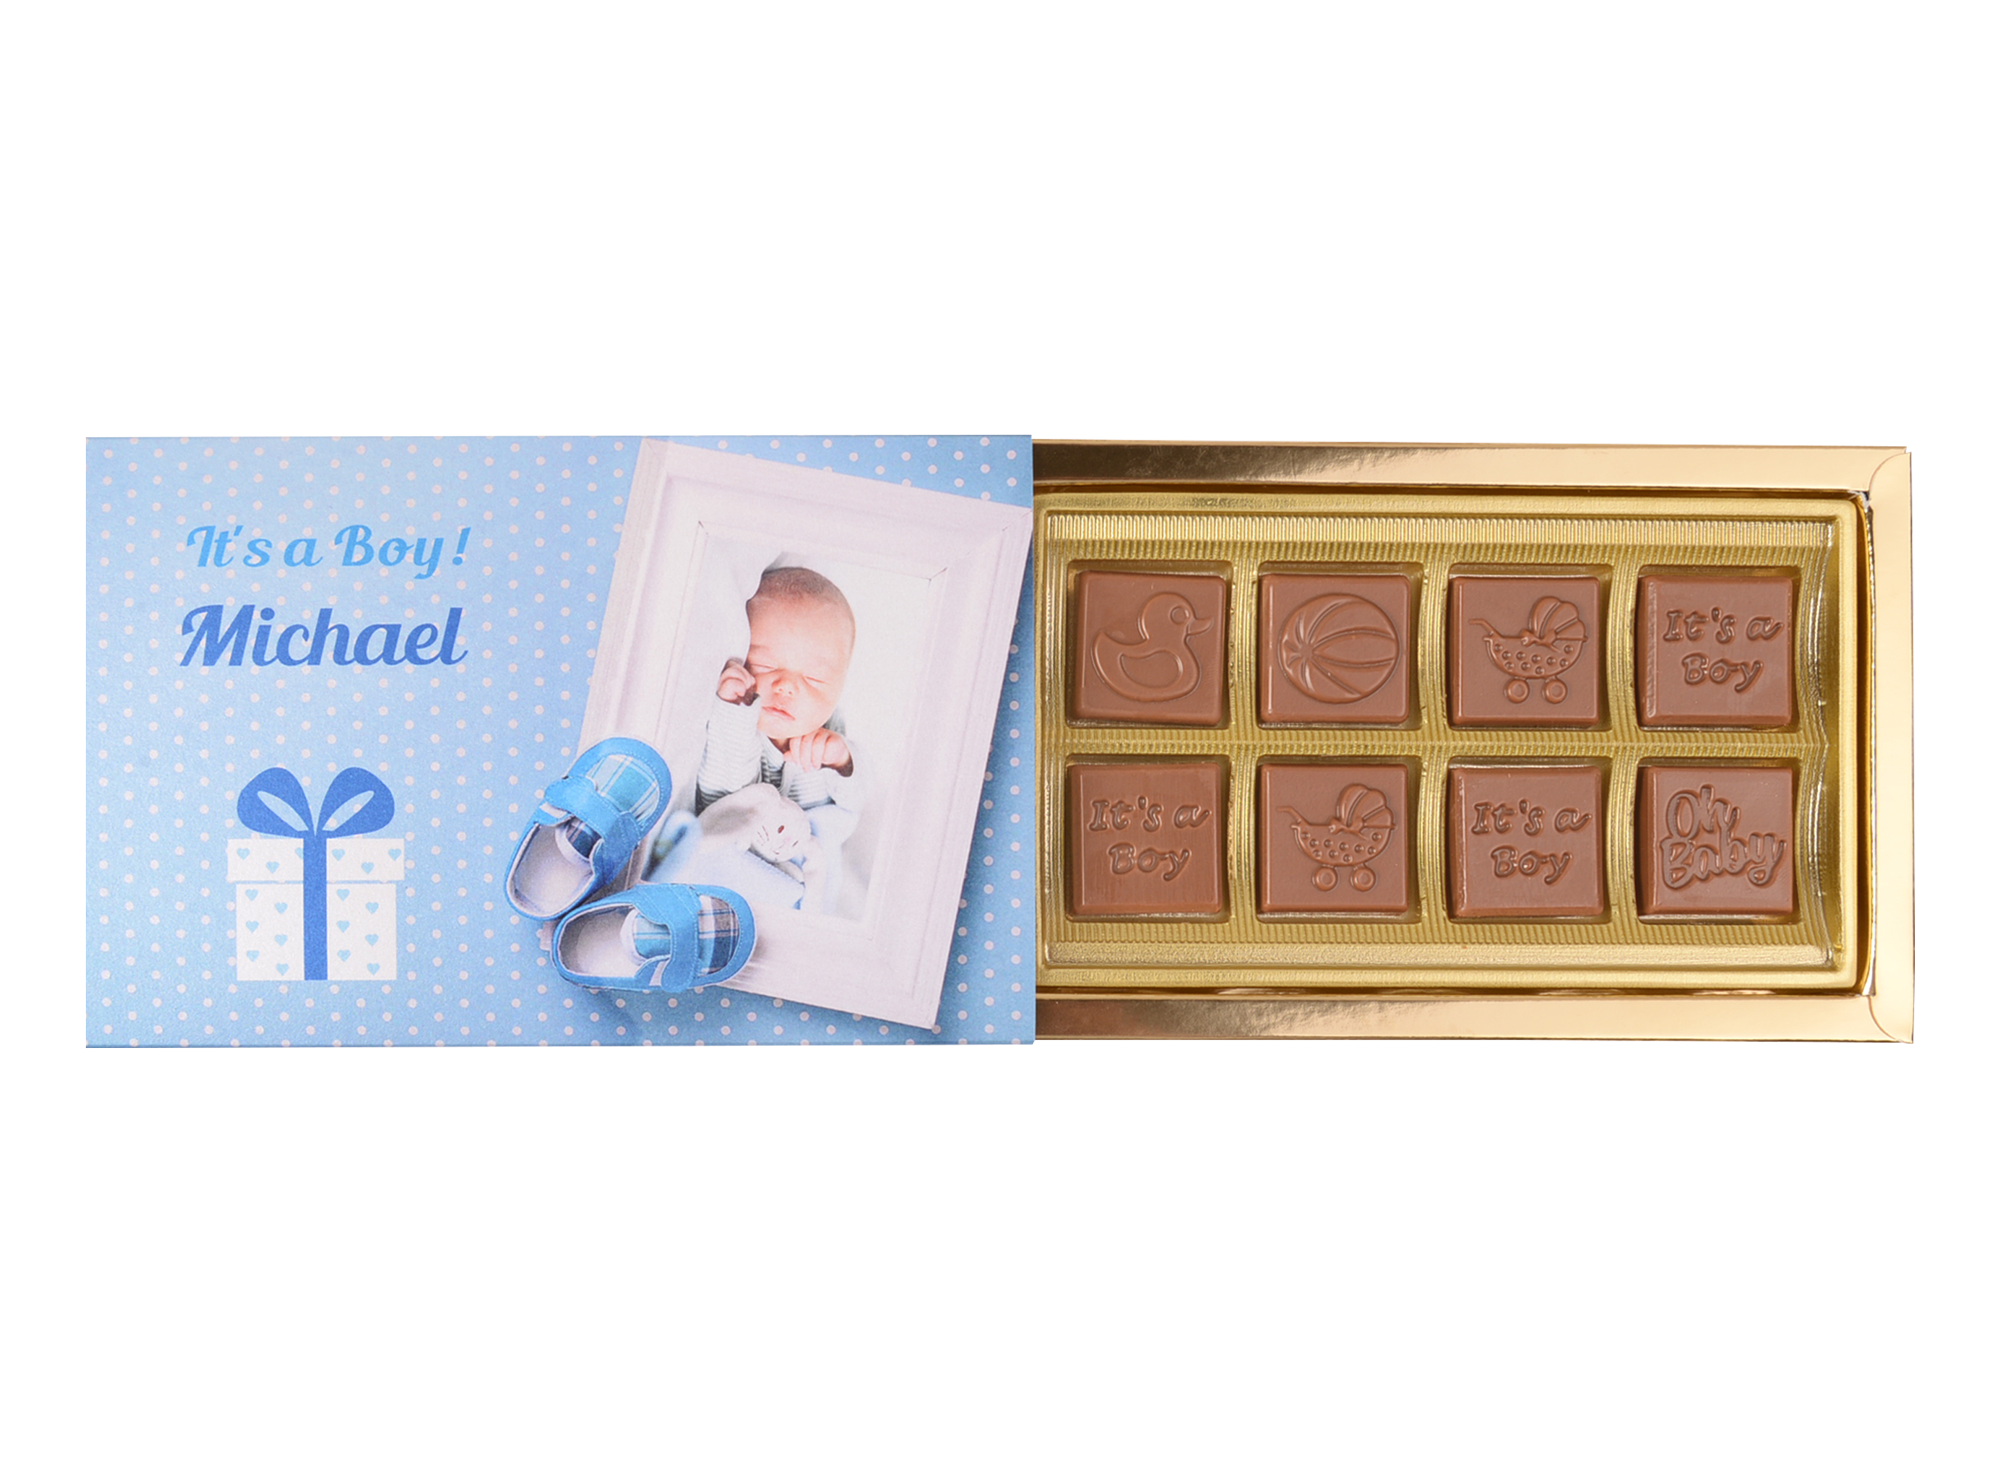 Mon Amie, 8 Pcs Customized Belgian Chocolate. It's A Boy Return Gift